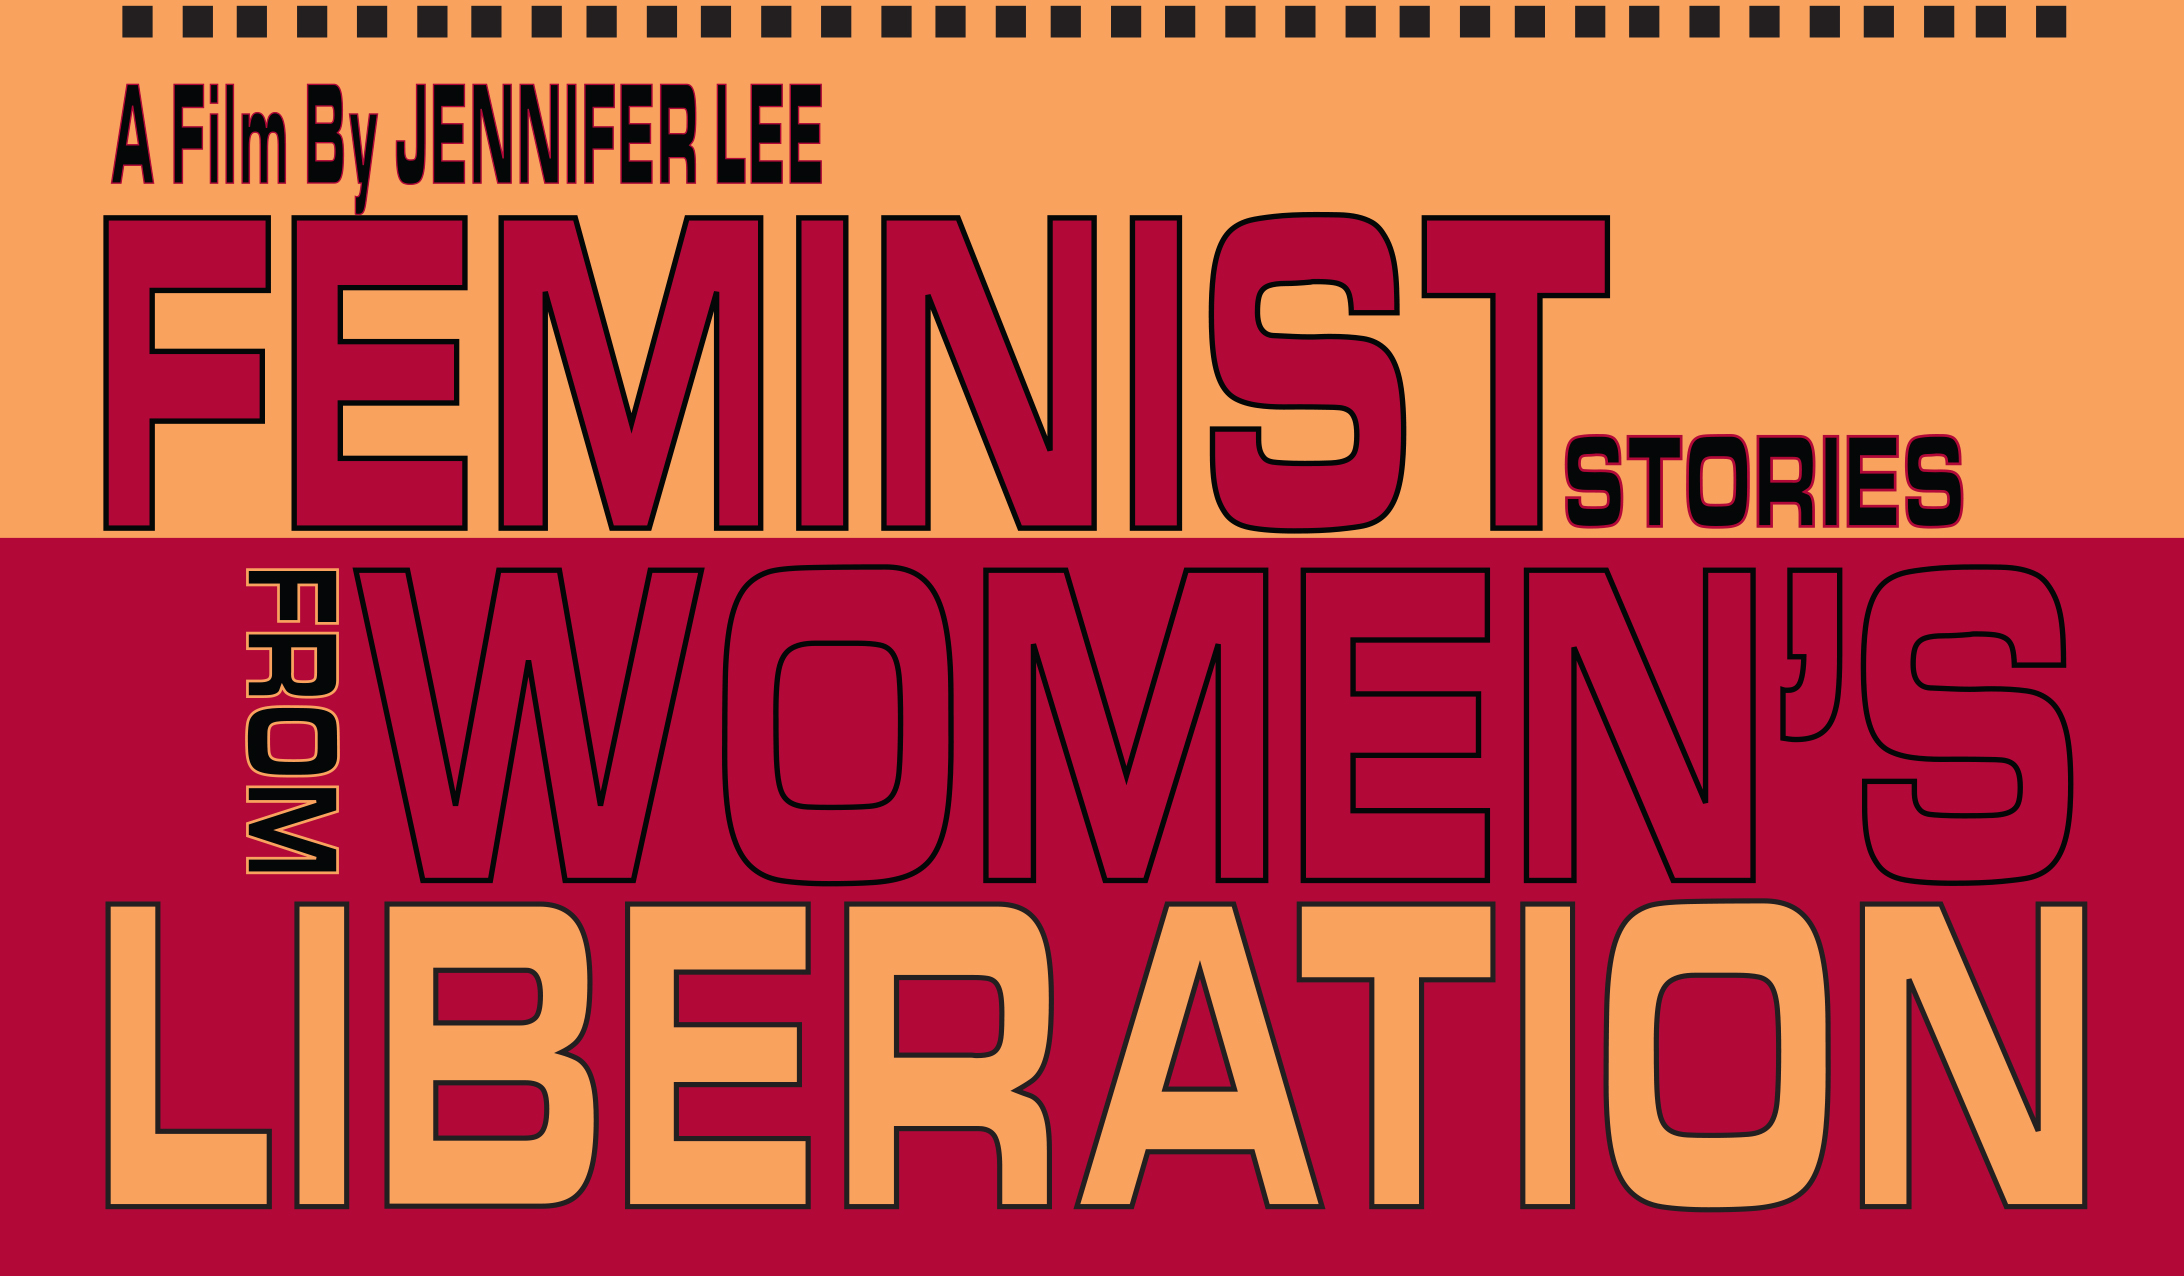 'Feminist Stories From Women's Liberation' poster detail